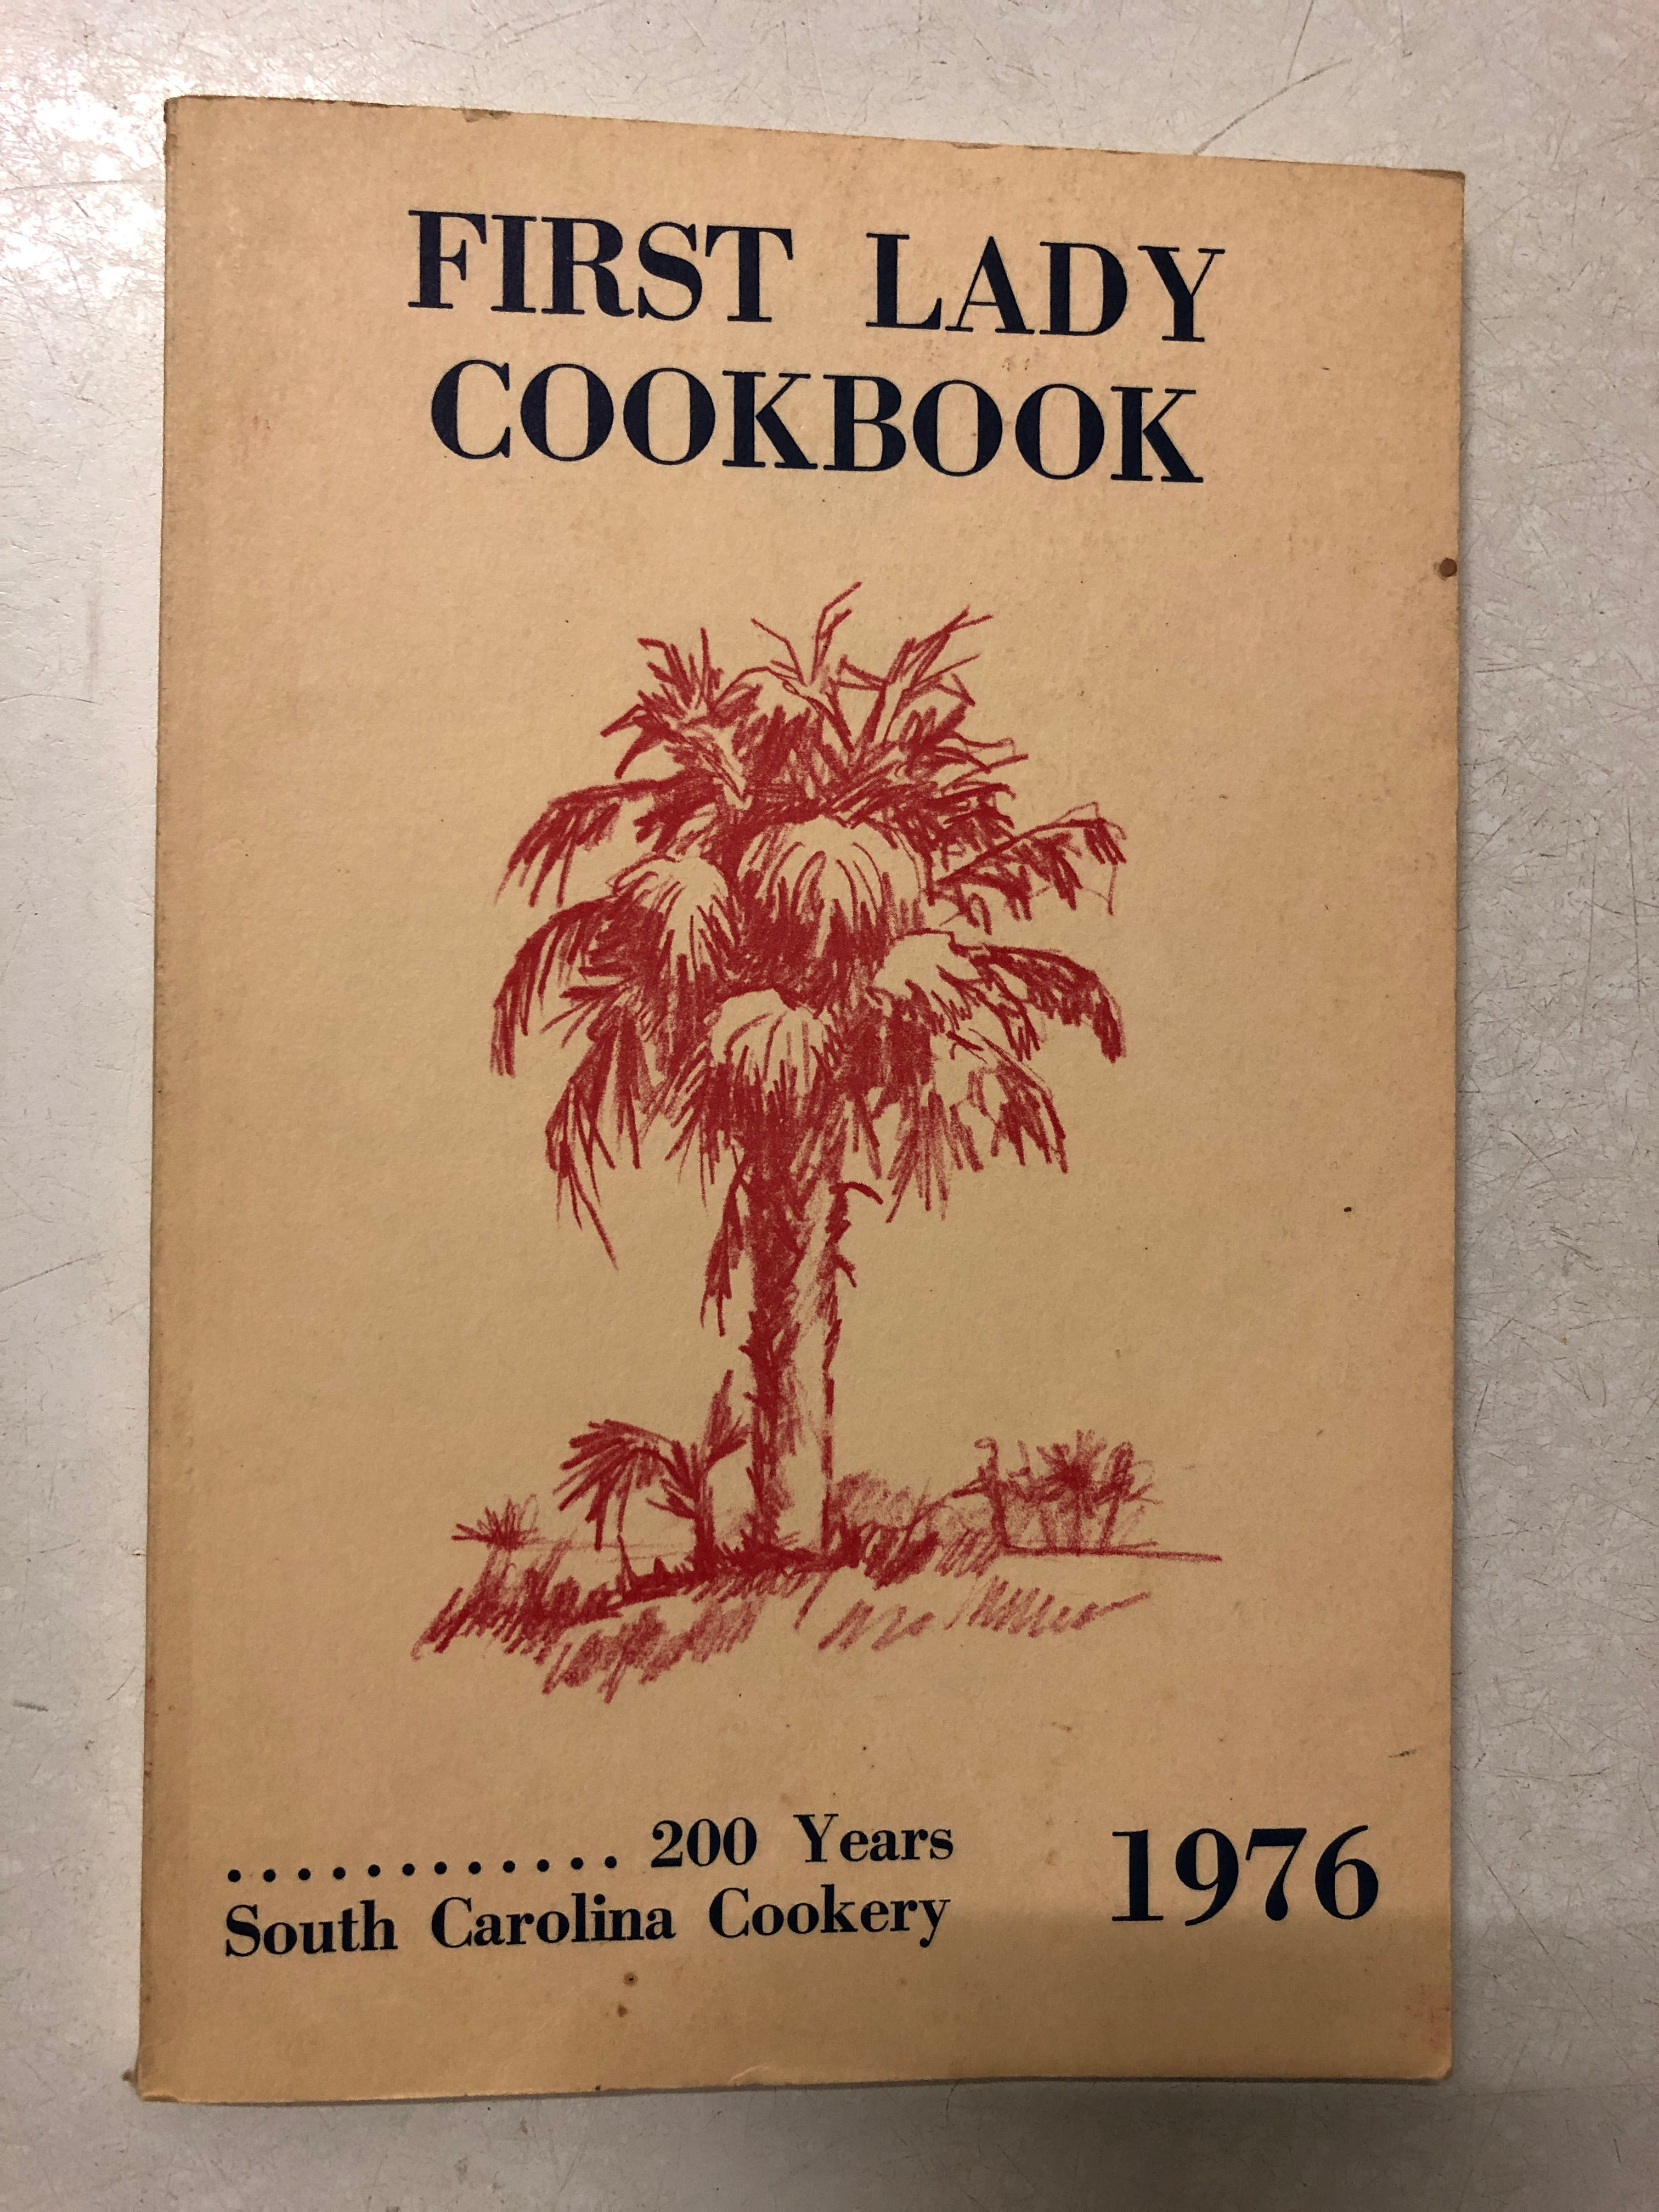 First Lady Cookbook 200 Years South Carolina Cookery 1976 - Slick Cat Books